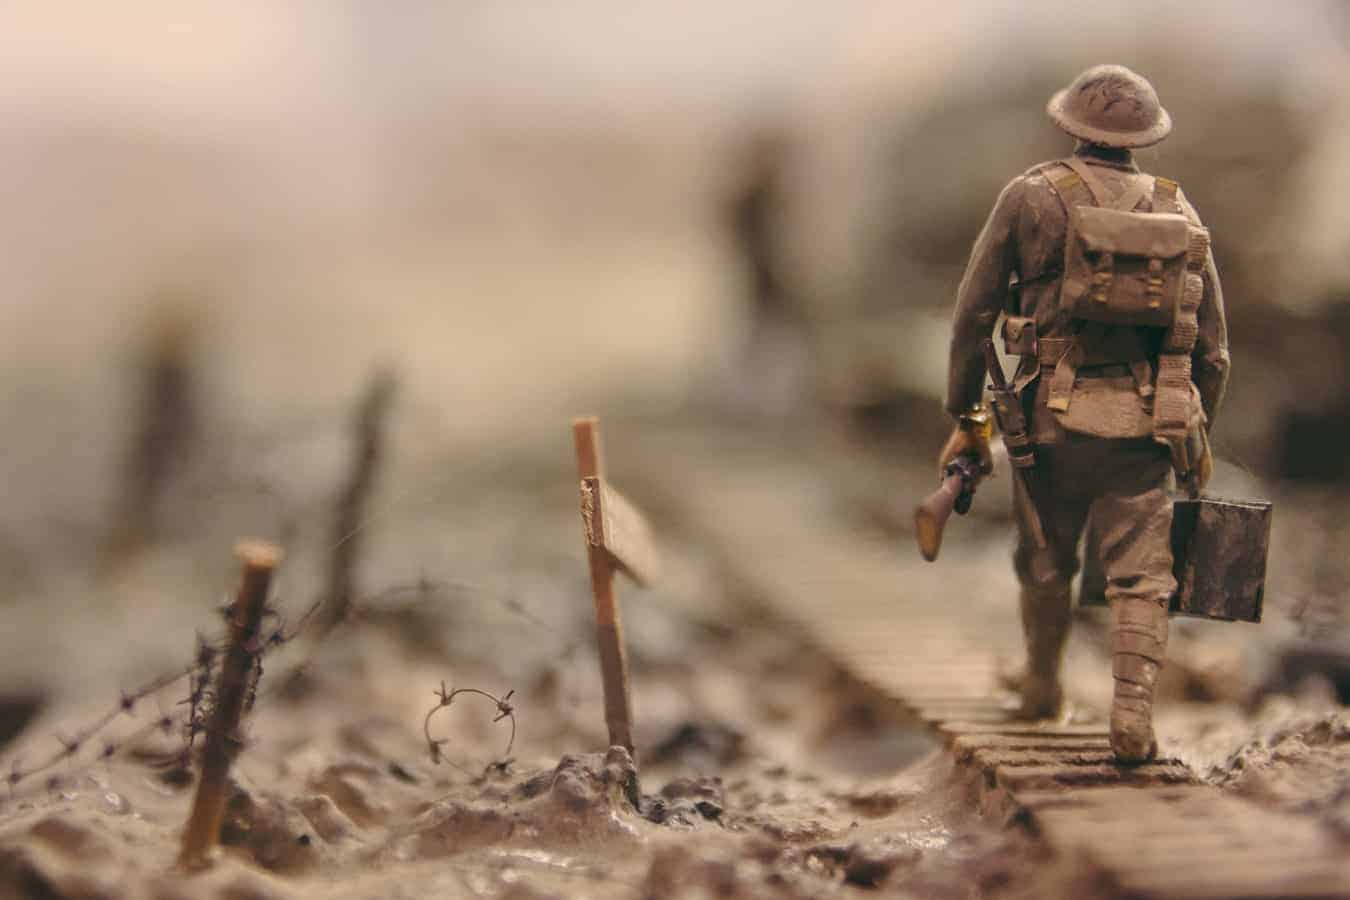 An old sepia photo of a soldier walking through ruins